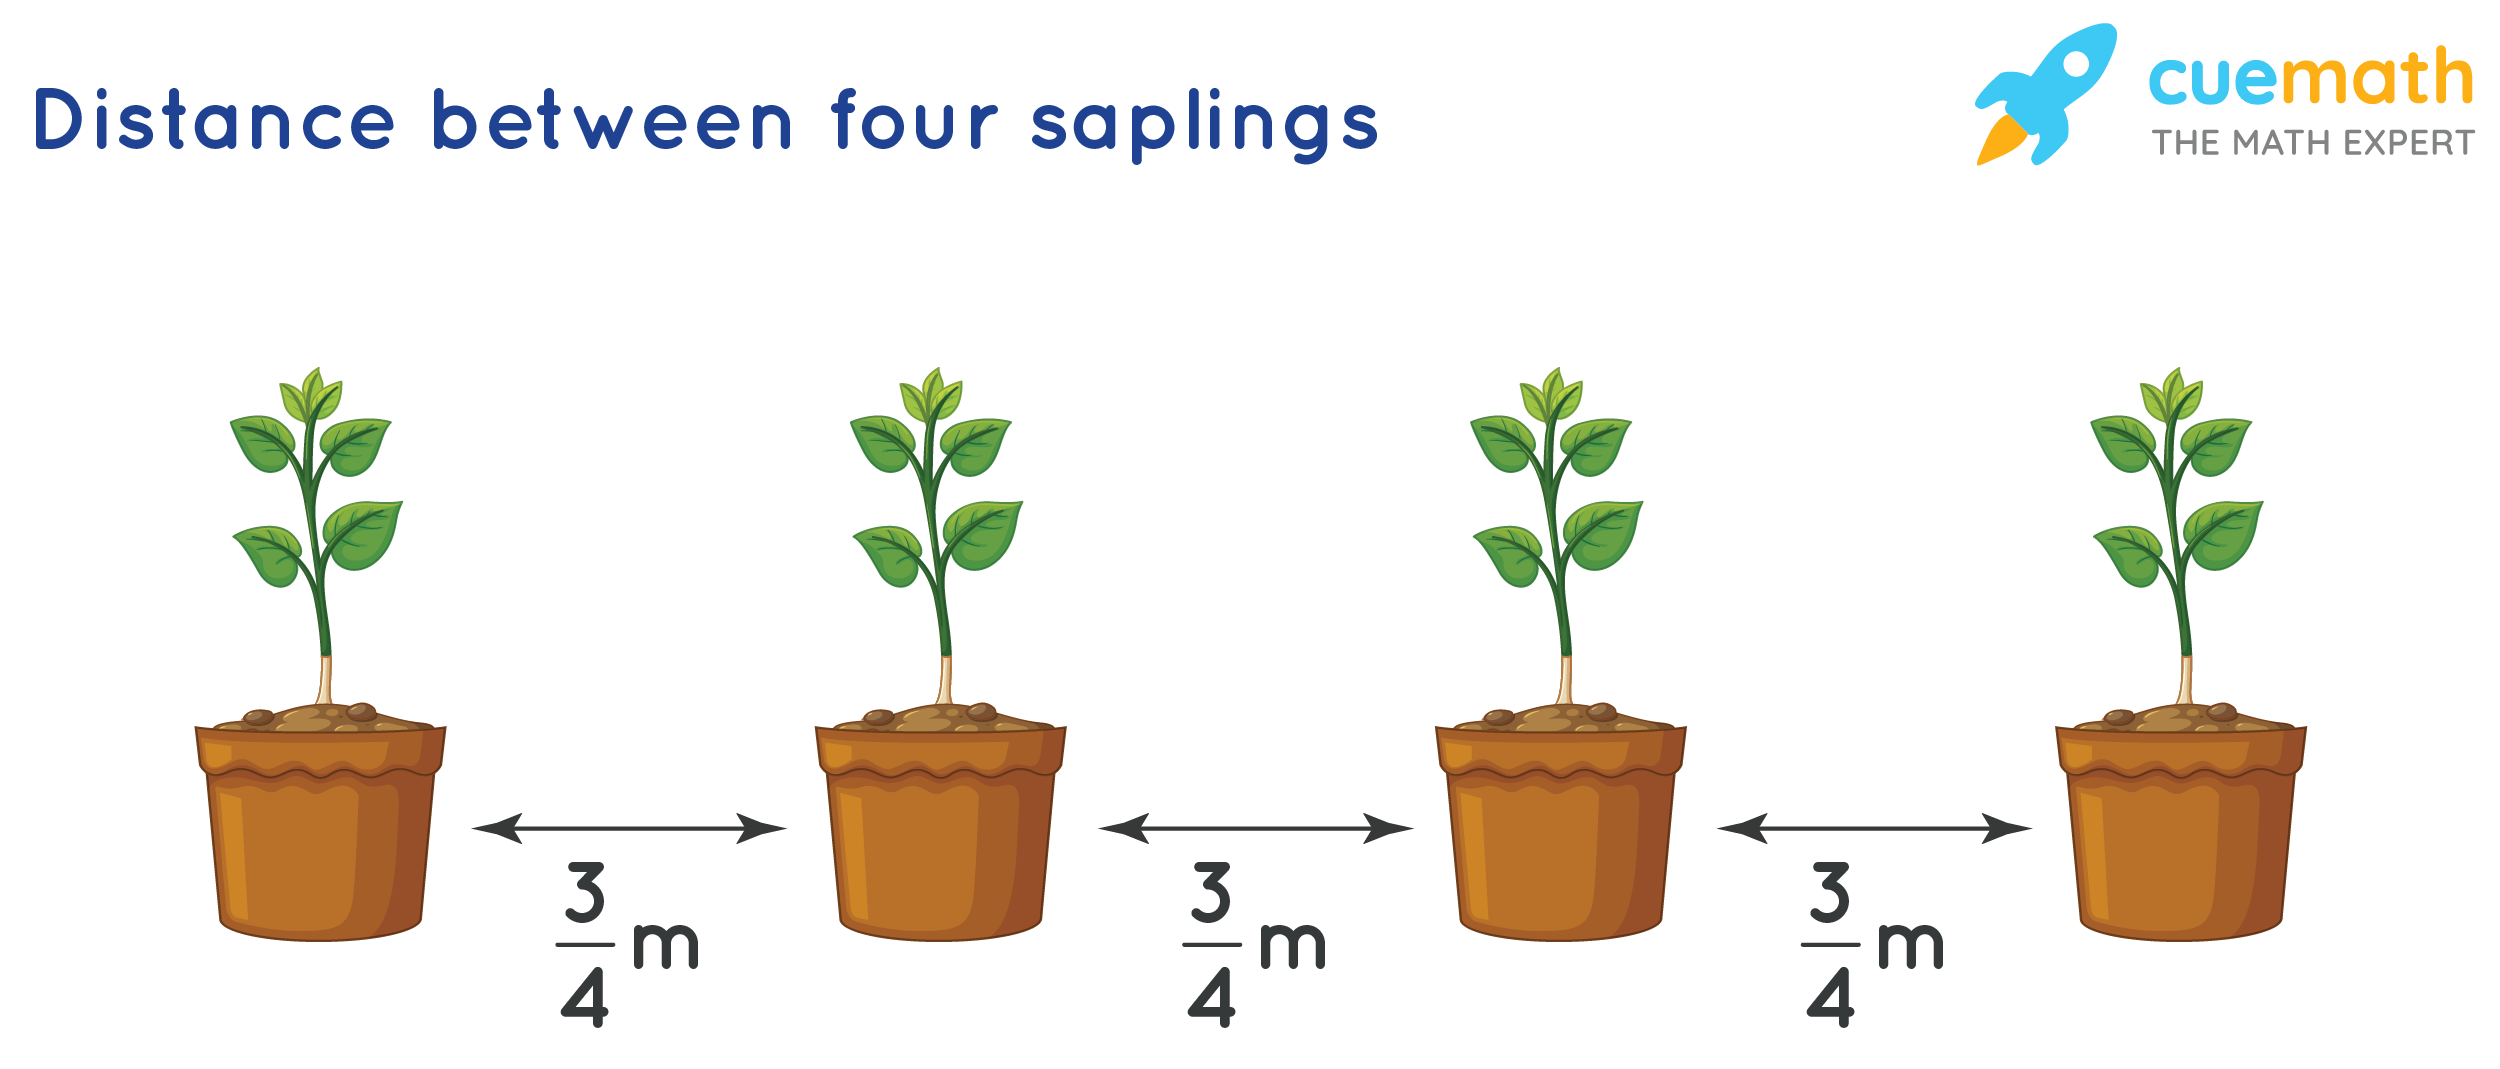 The distance between two adjacent saplings is 3/4 m